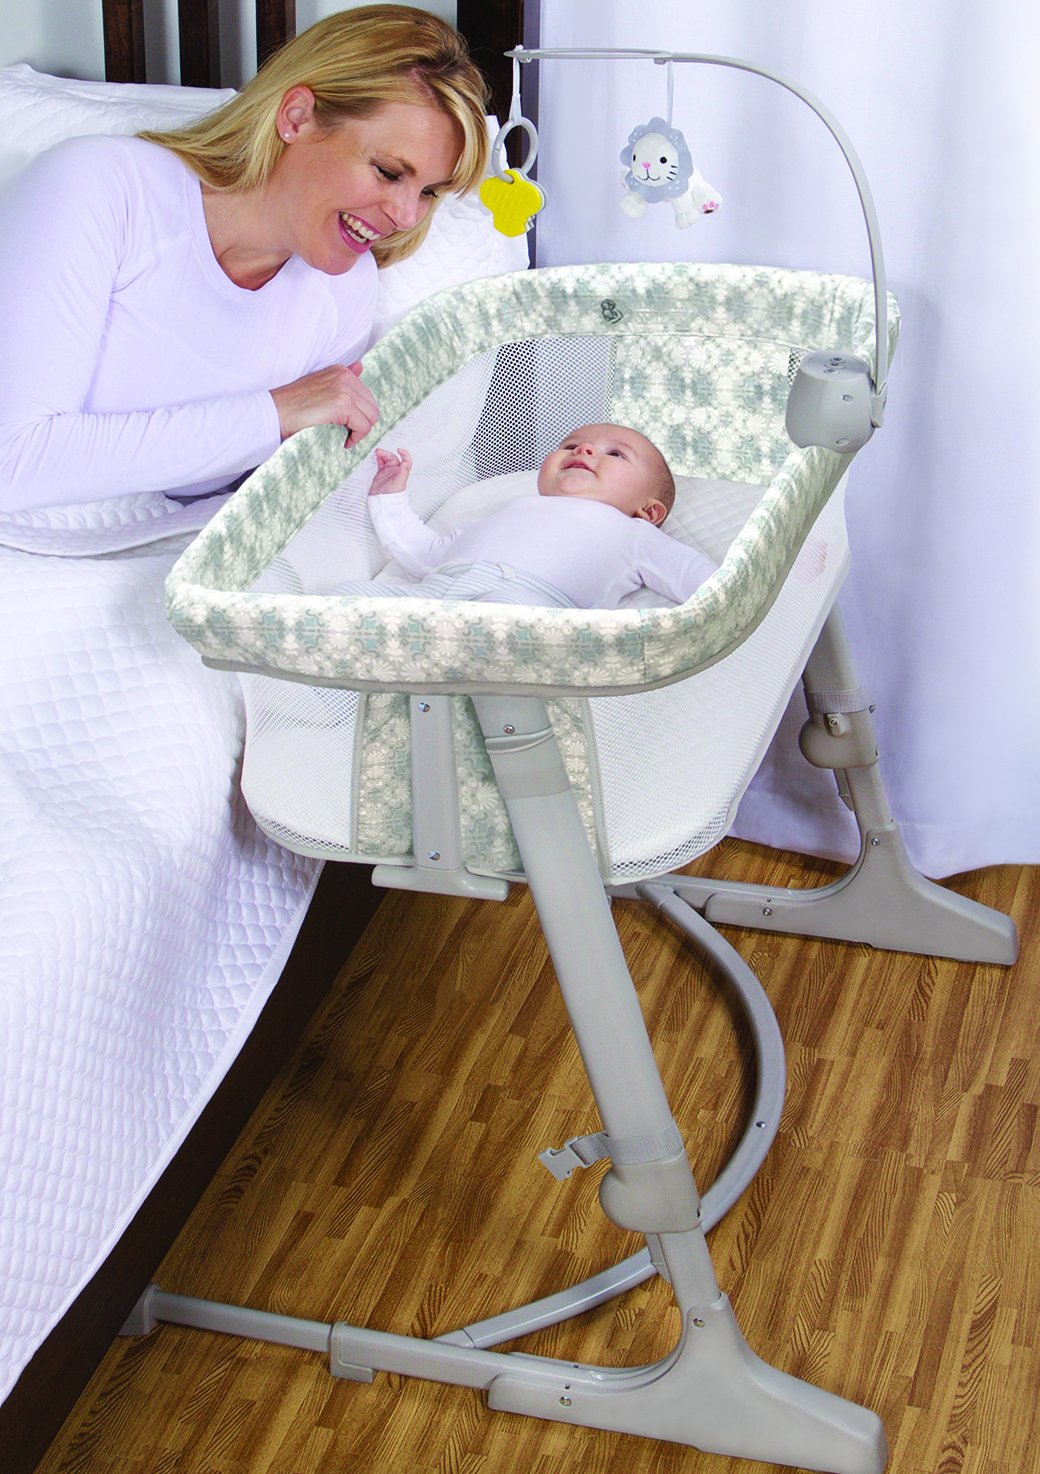 01e0d5381 Amazon.com   Arm s Reach Versatile Co-Sleeper - Interlock   Baby